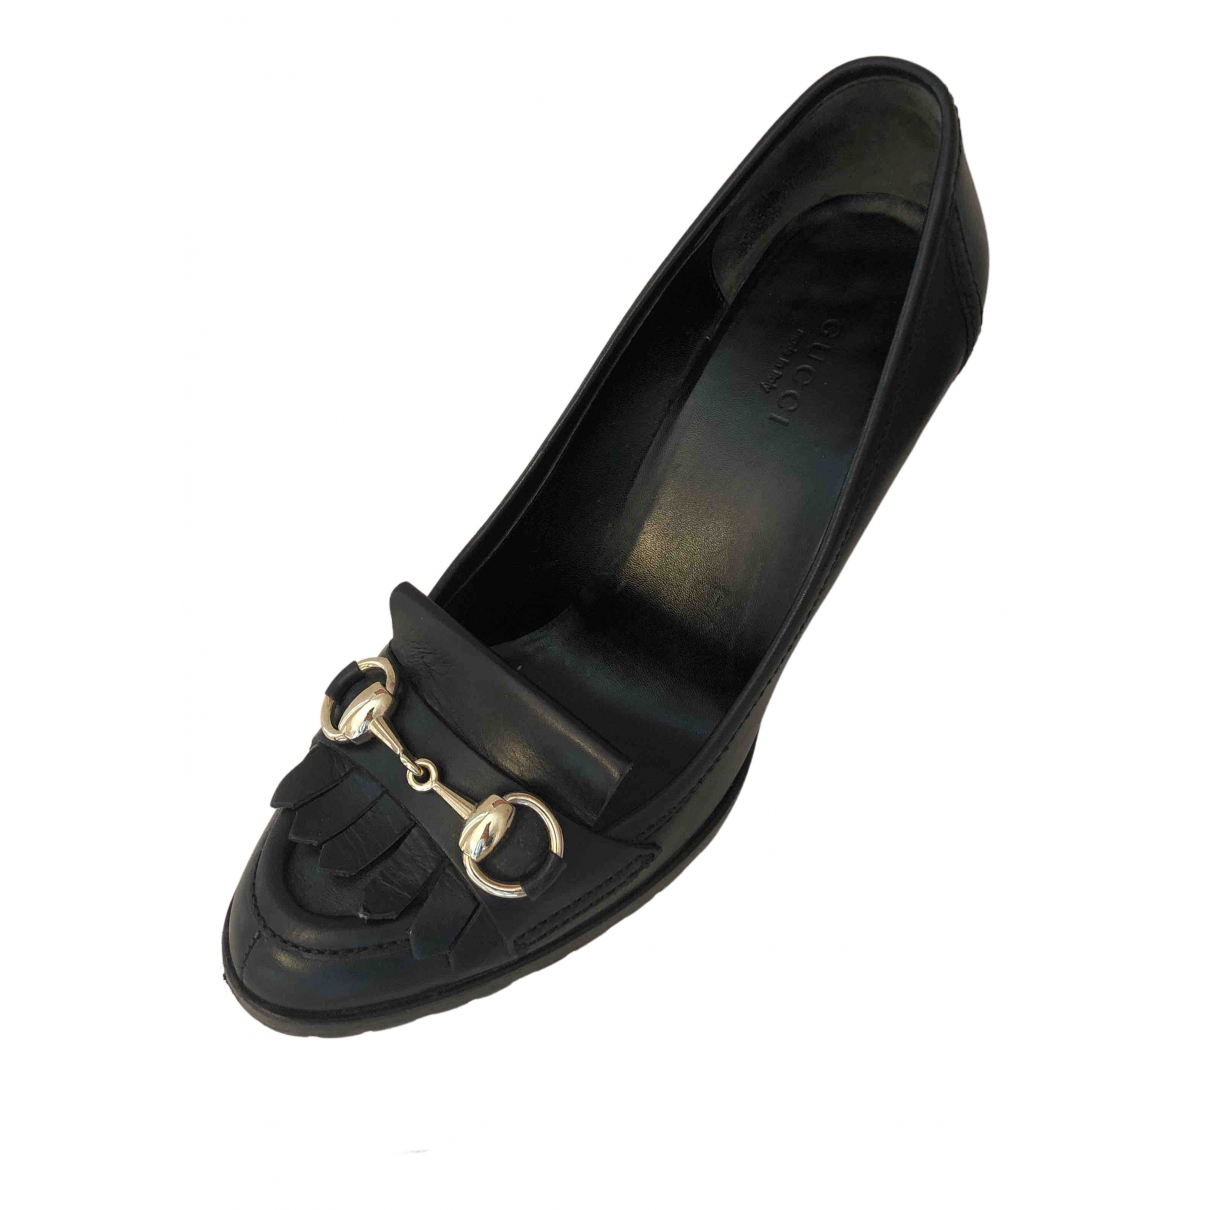 Gucci N Black Leather Heels for Women 36 IT